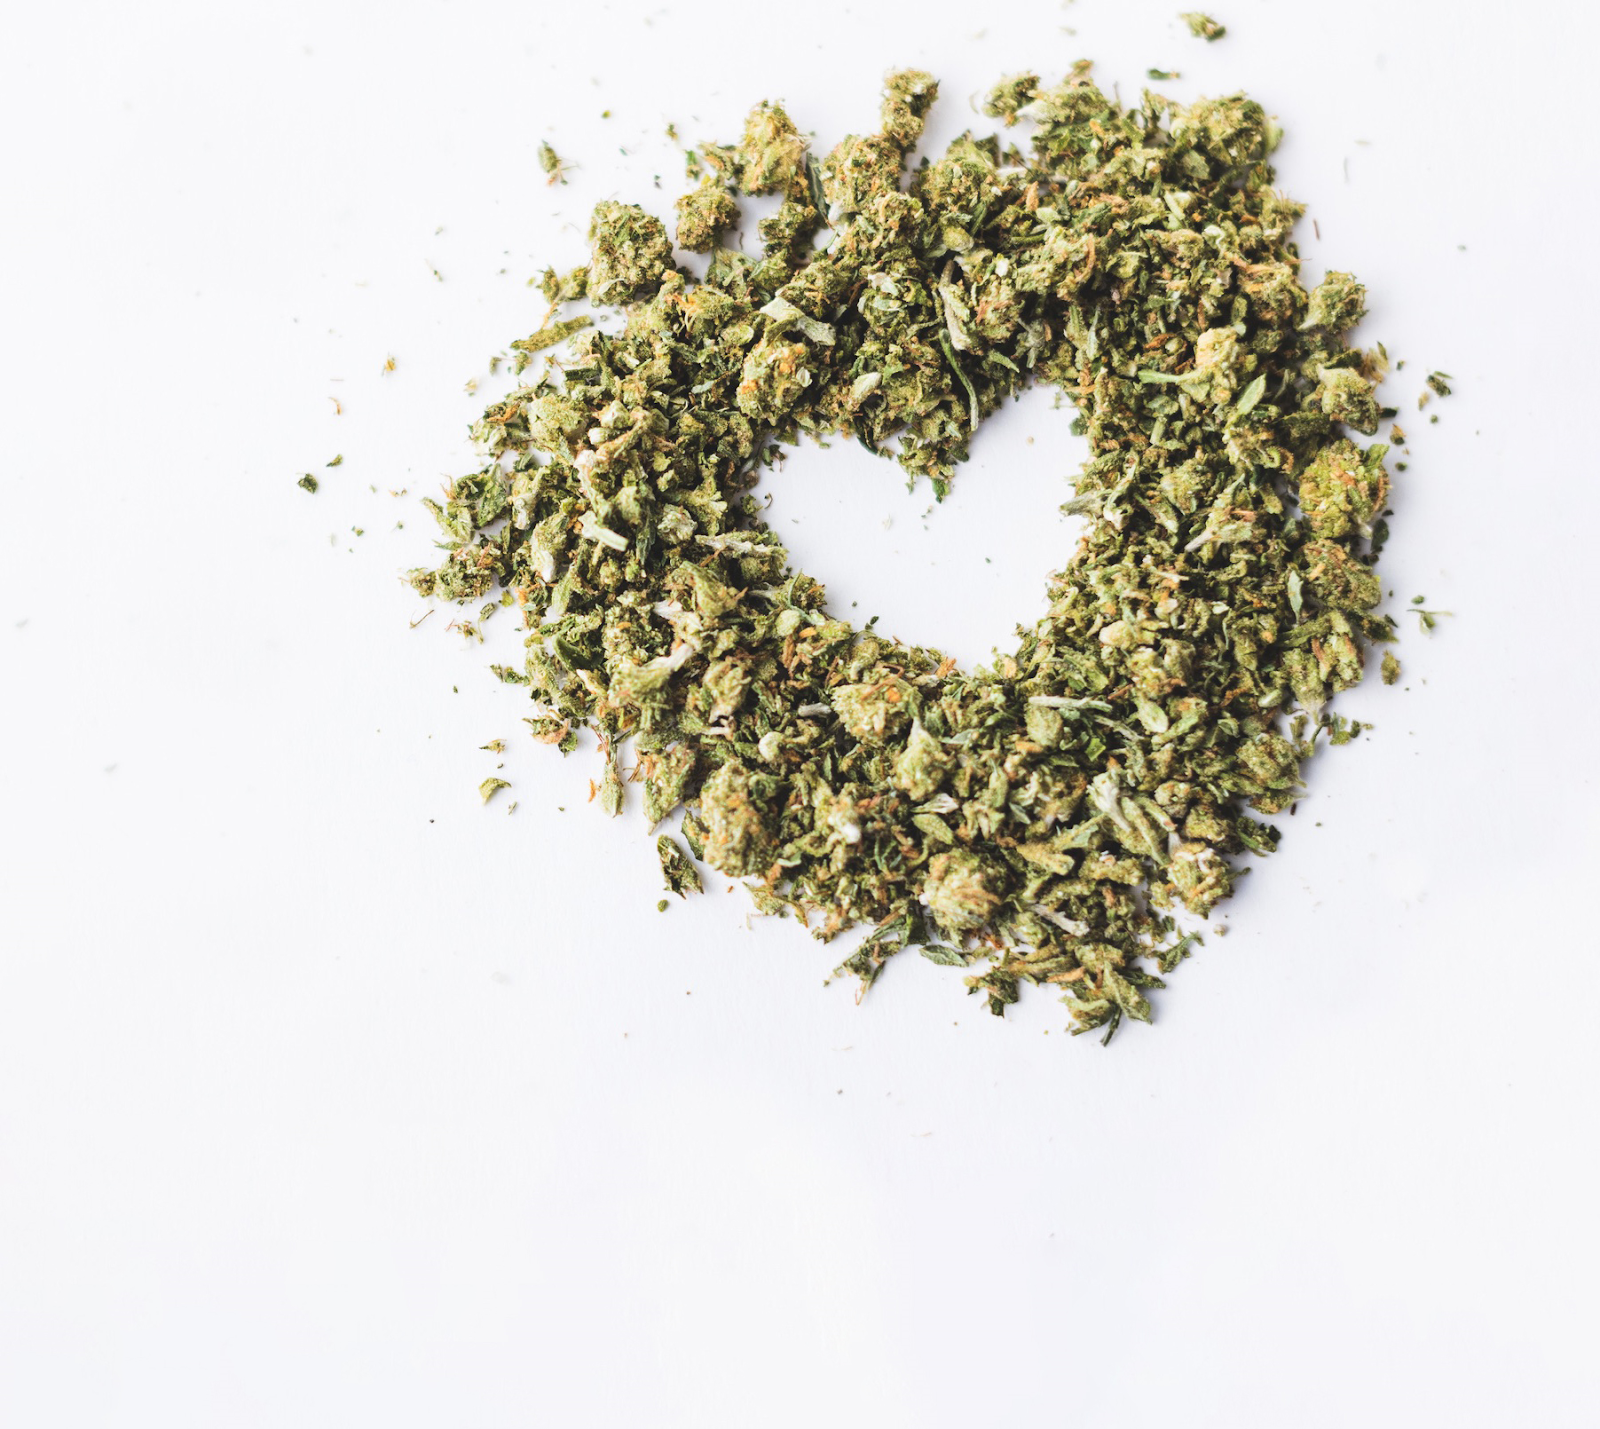 cannabis in the shape of a heart